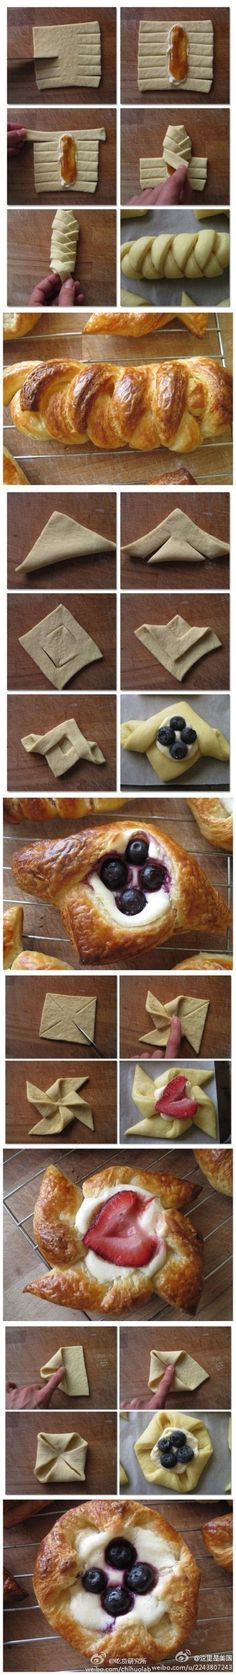 Pastry Folding Hacks |  Creative Food Hacks That Will Change The Way You Cook